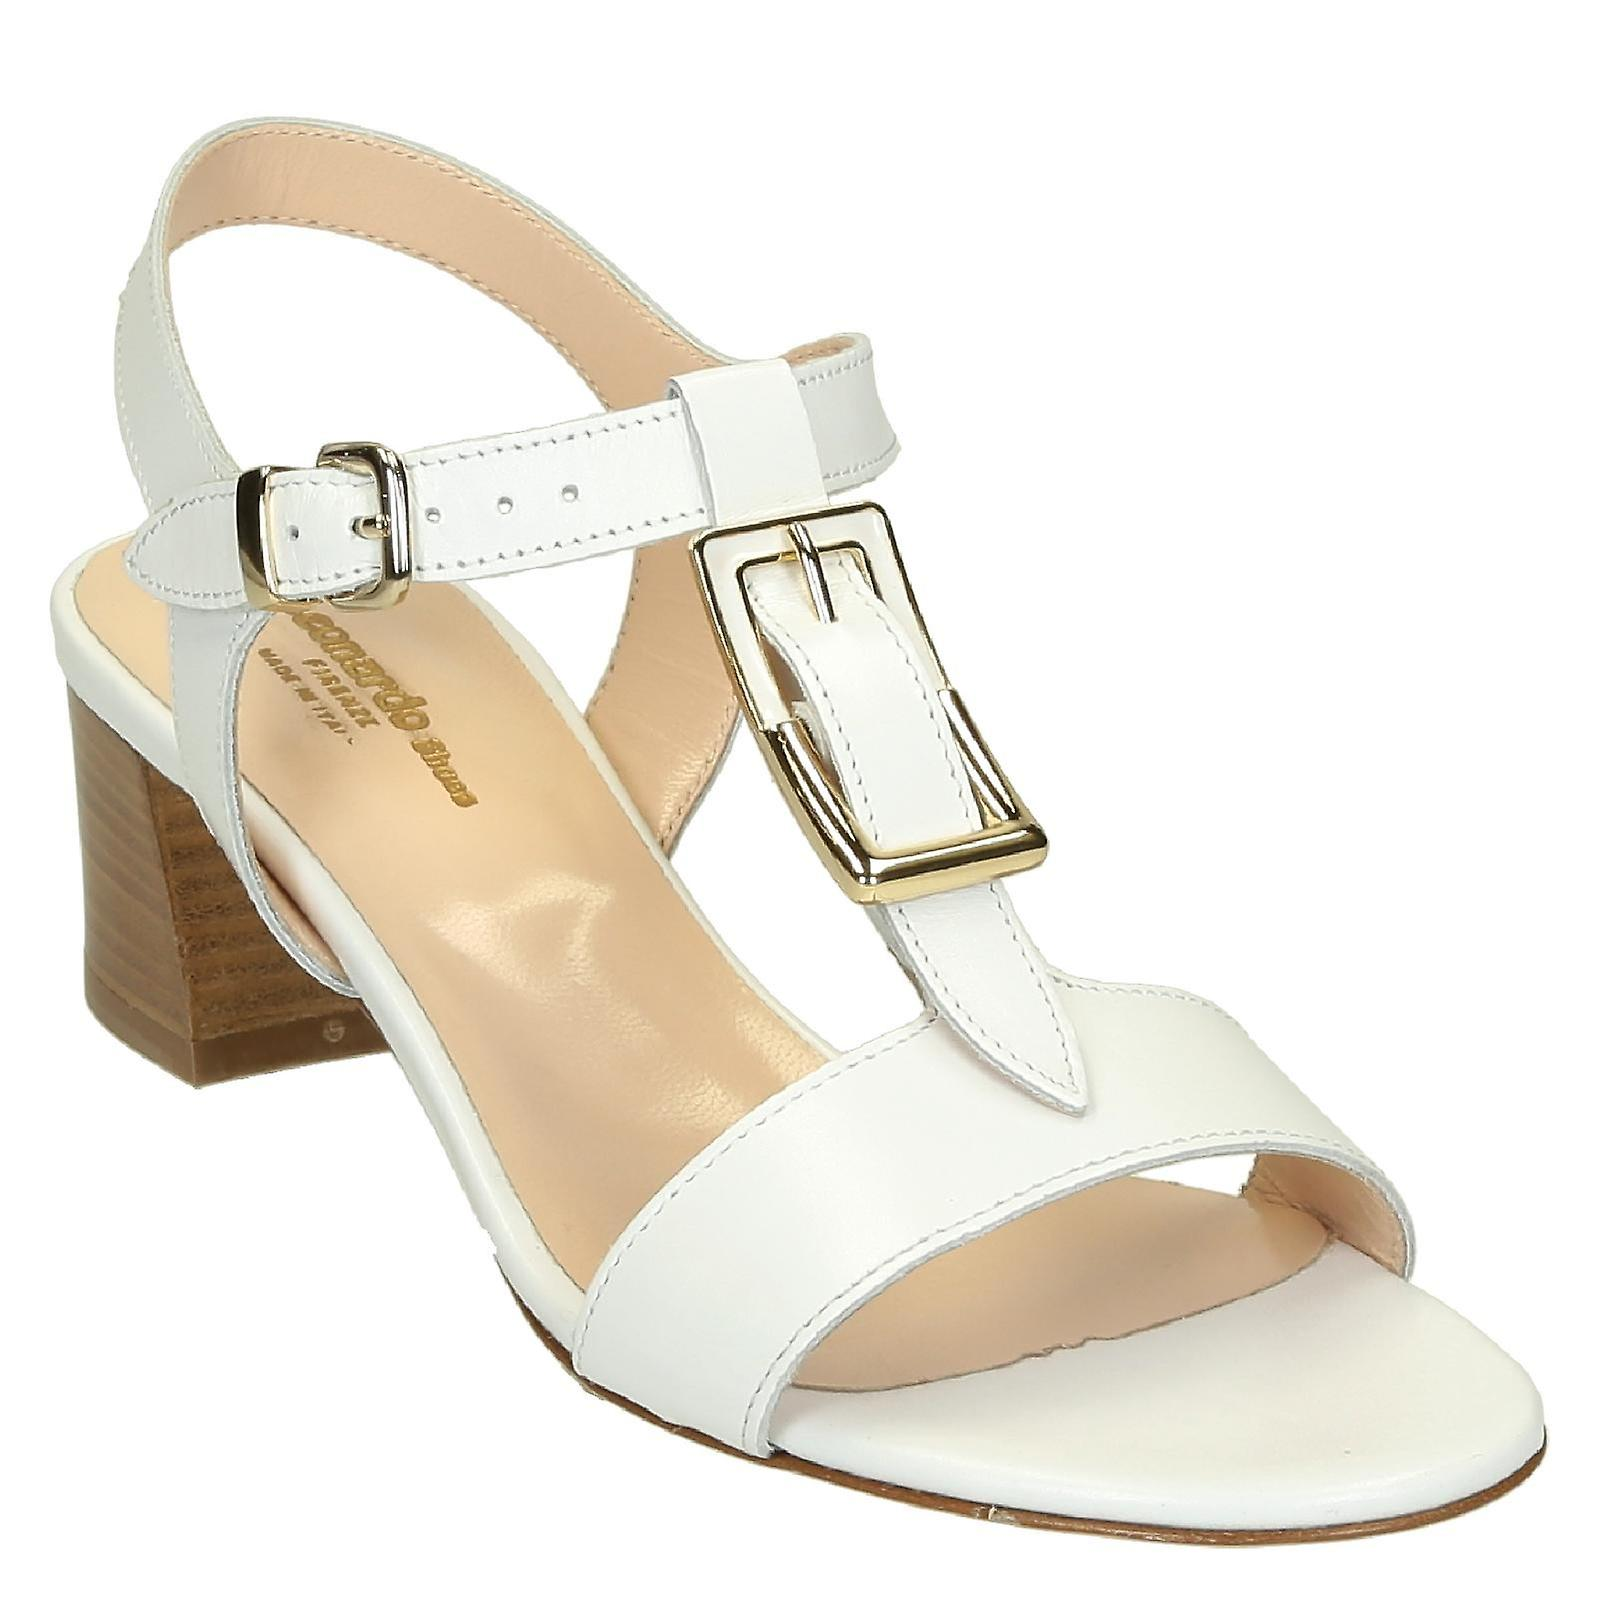 White leather heeled strappy sandals handmade AOiM7